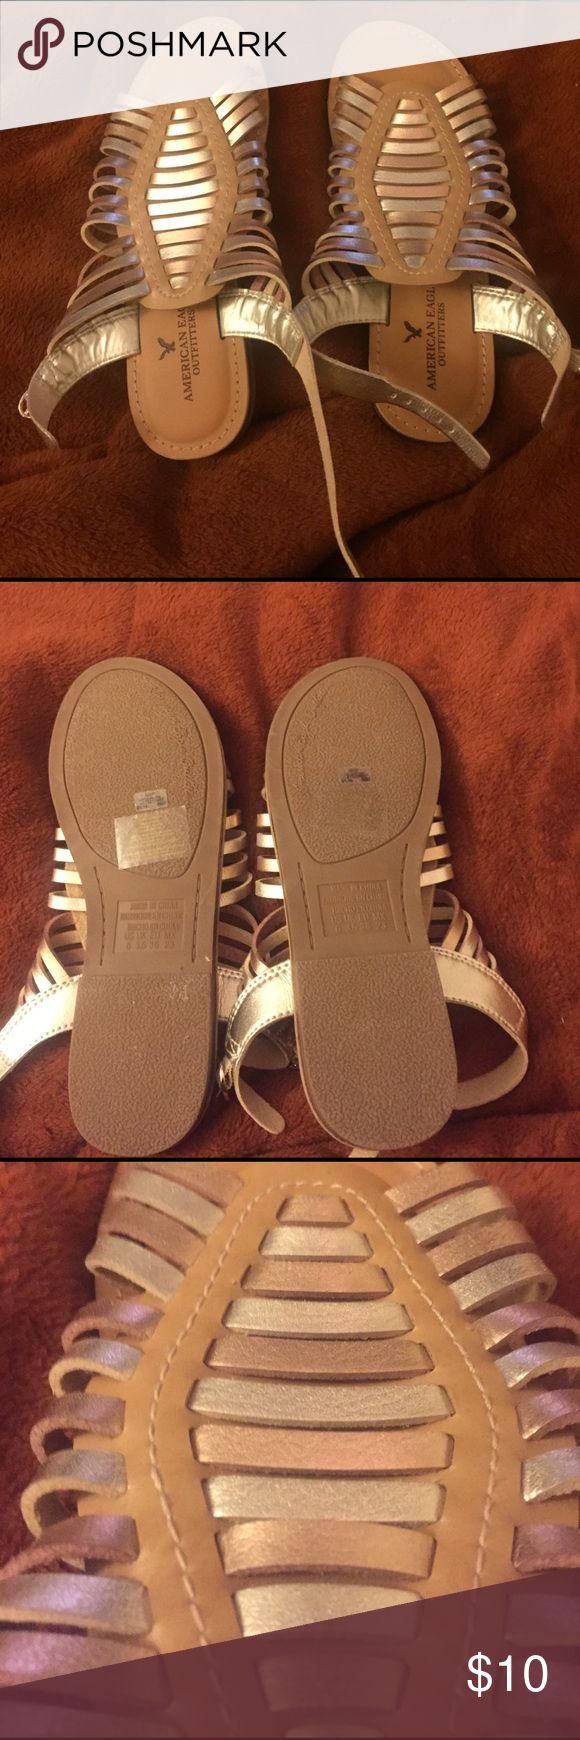 Gold and silver strappy sandals Worn to a dance but never worn other than that. Very comfortable. American Eagle Outfitters Shoes Sandals